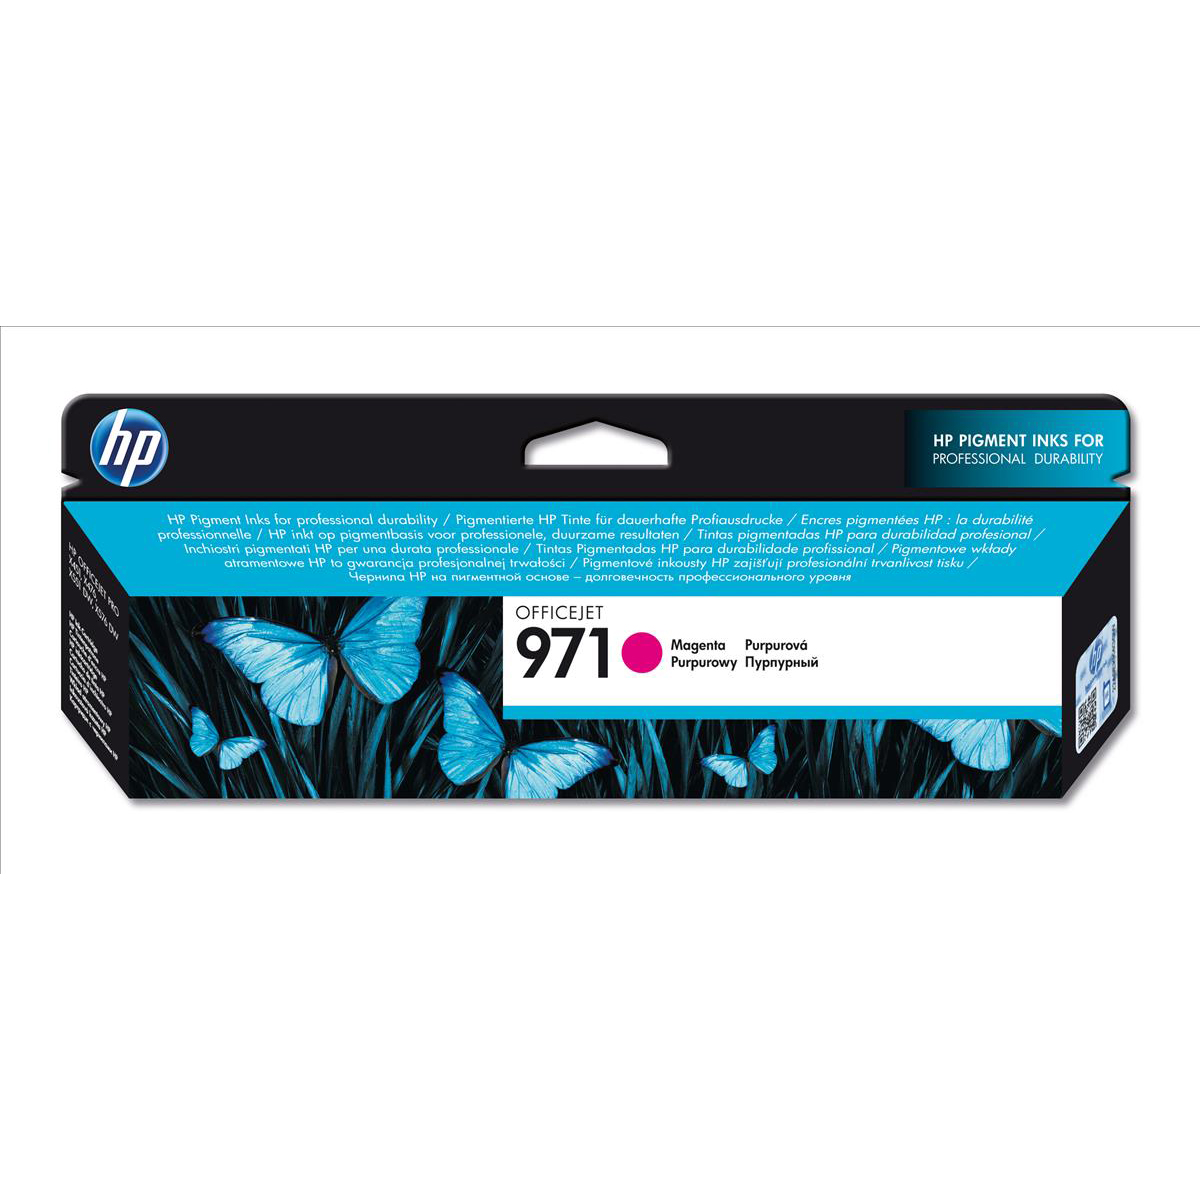 Hewlett Packard HP 971 Officejet Inkjet Cartridge Page Life 2500pp Magenta Ref CN623AE